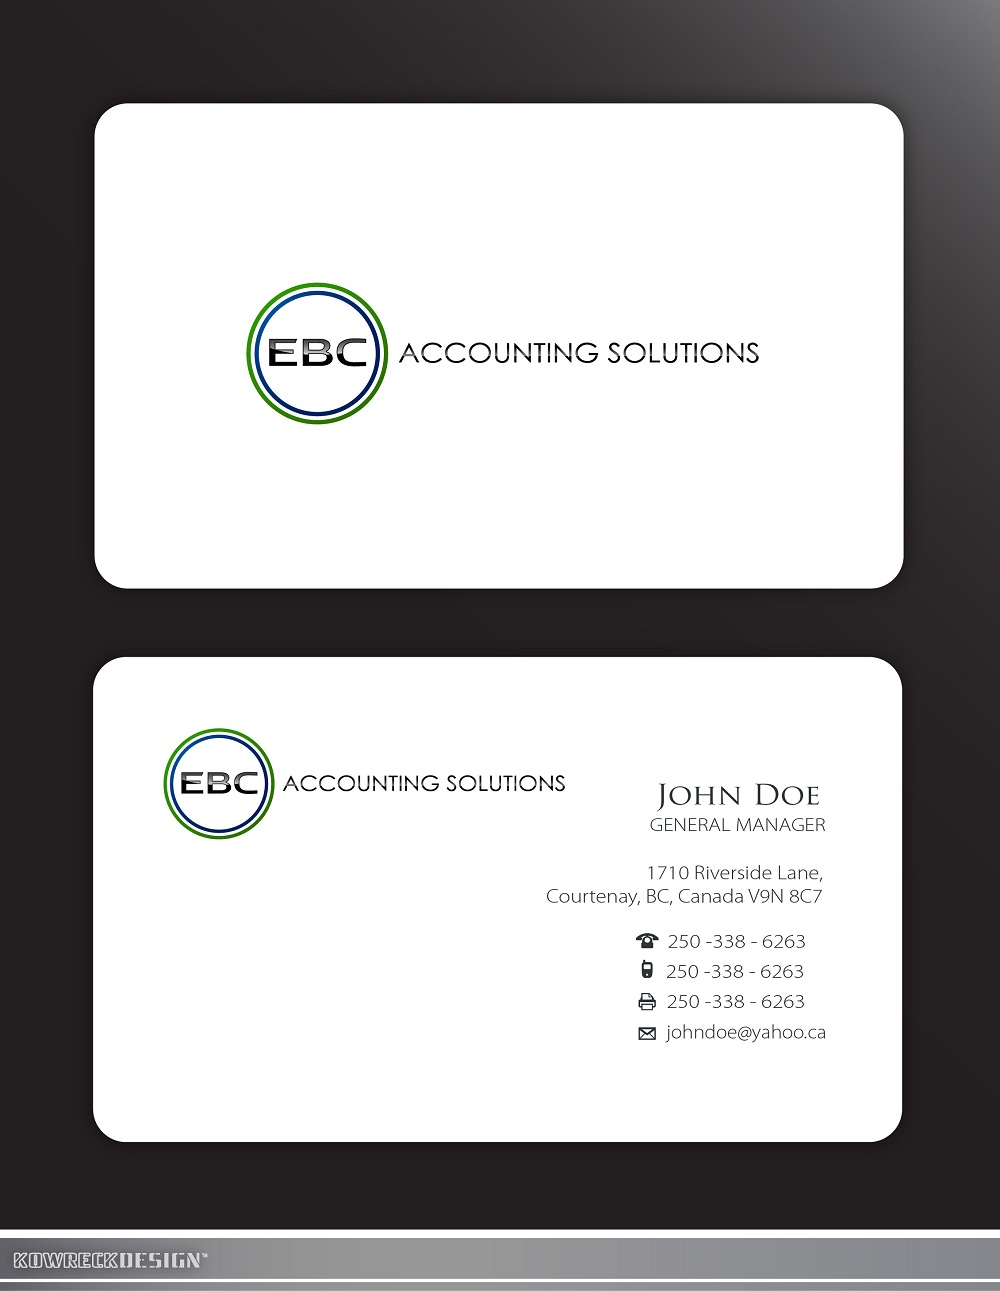 Logo Design by kowreck - Entry No. 240 in the Logo Design Contest New Logo Design for EBC Accounting Solutions.